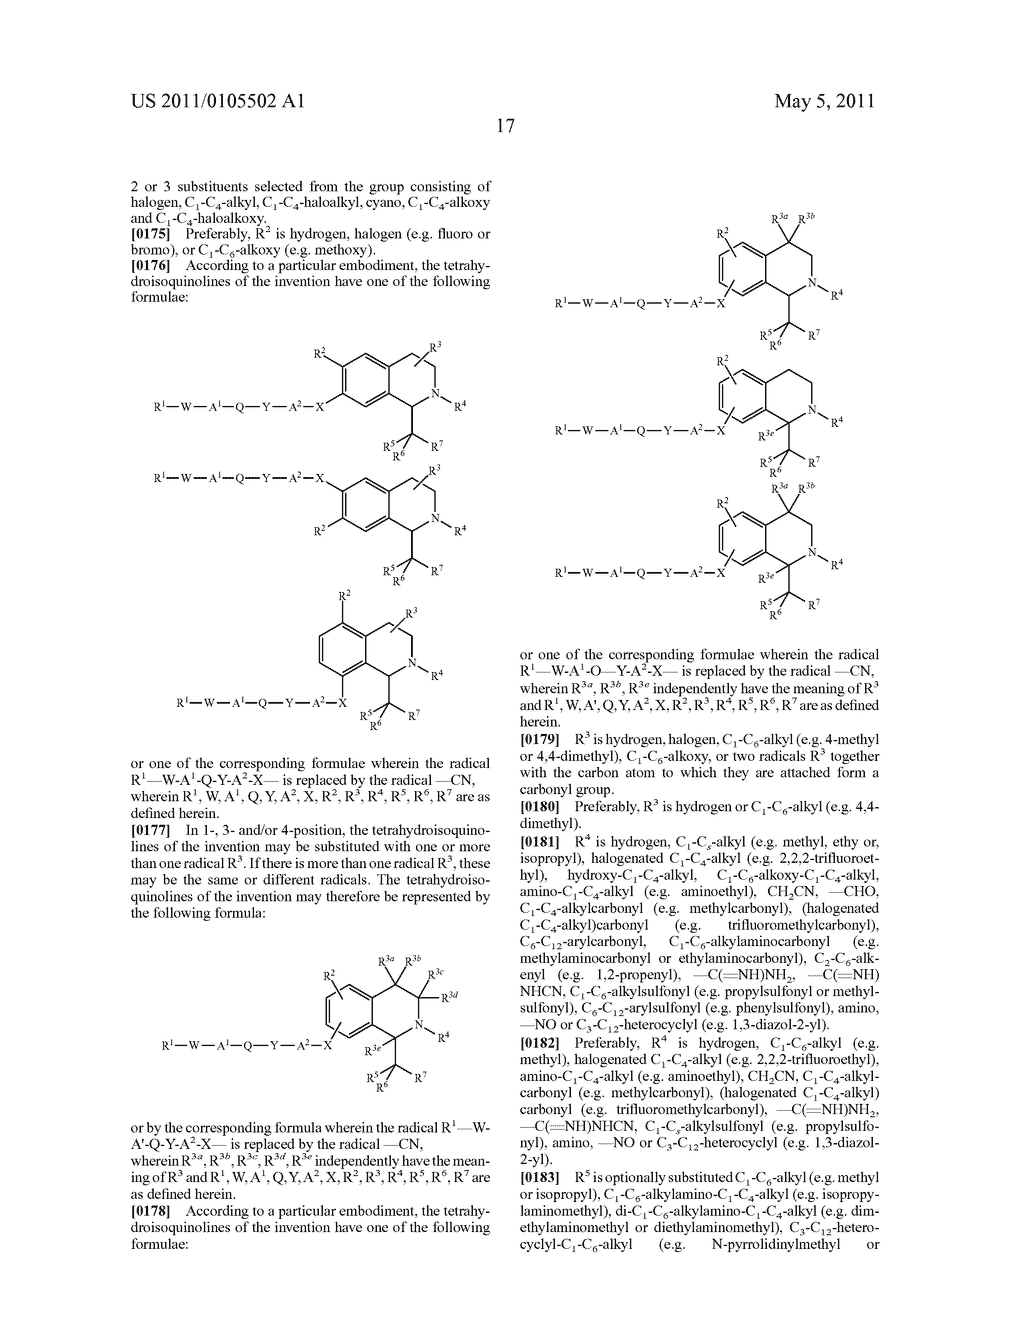 TETRAHYDROISOQUINOLINES, PHARMACEUTICAL COMPOSITIONS CONTAINING THEM, AND THEIR USE IN THERAPY - diagram, schematic, and image 18